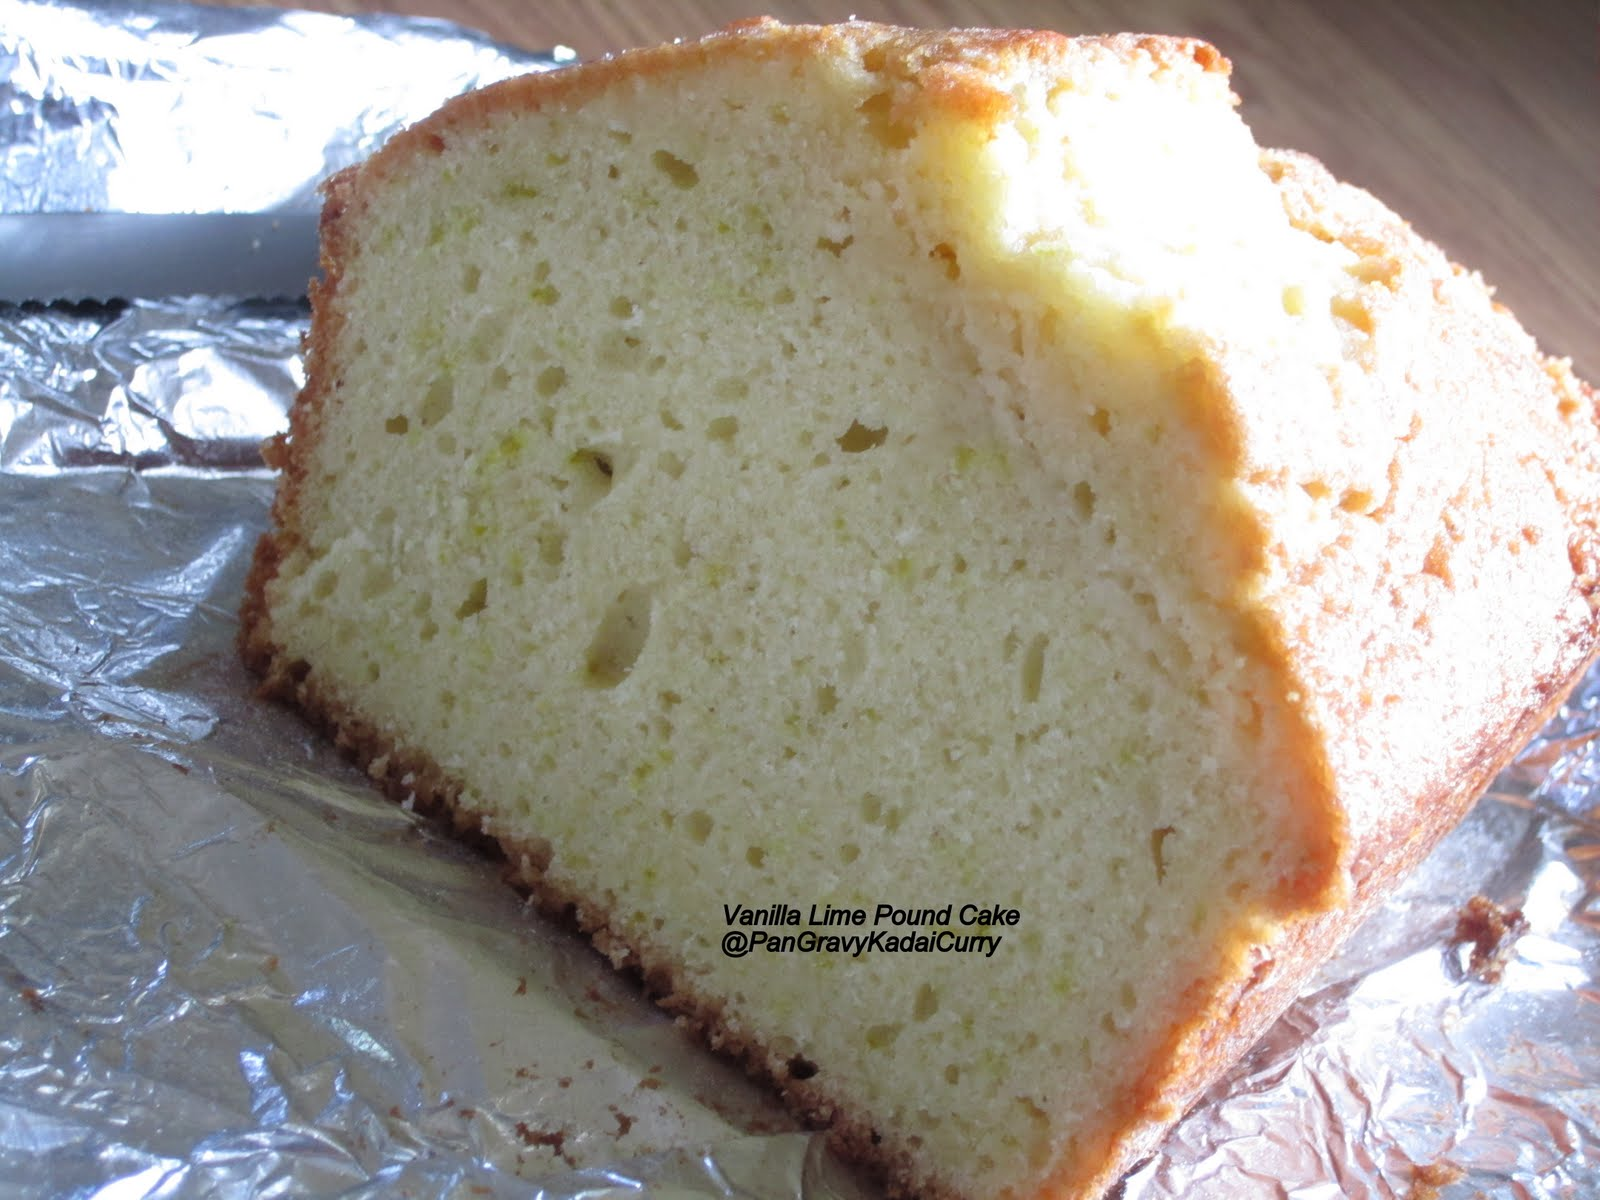 Cake Recipe With Kadai: Pan Gravy Kadai Curry: Vanilla And Lime Pound Cake